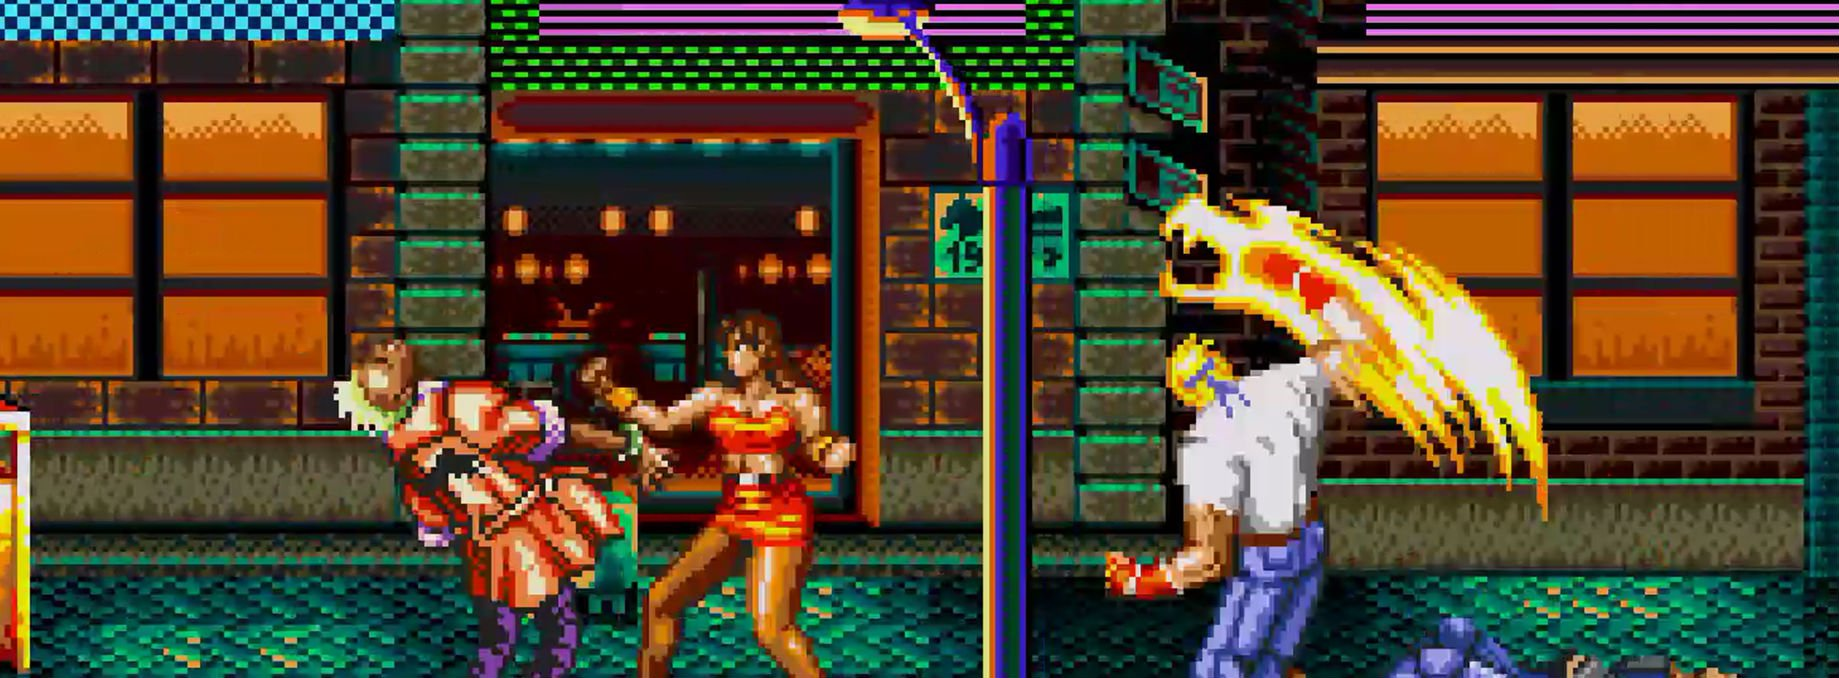 25 classic Sega games are coming to Amazon devices and they run pretty well screenshot